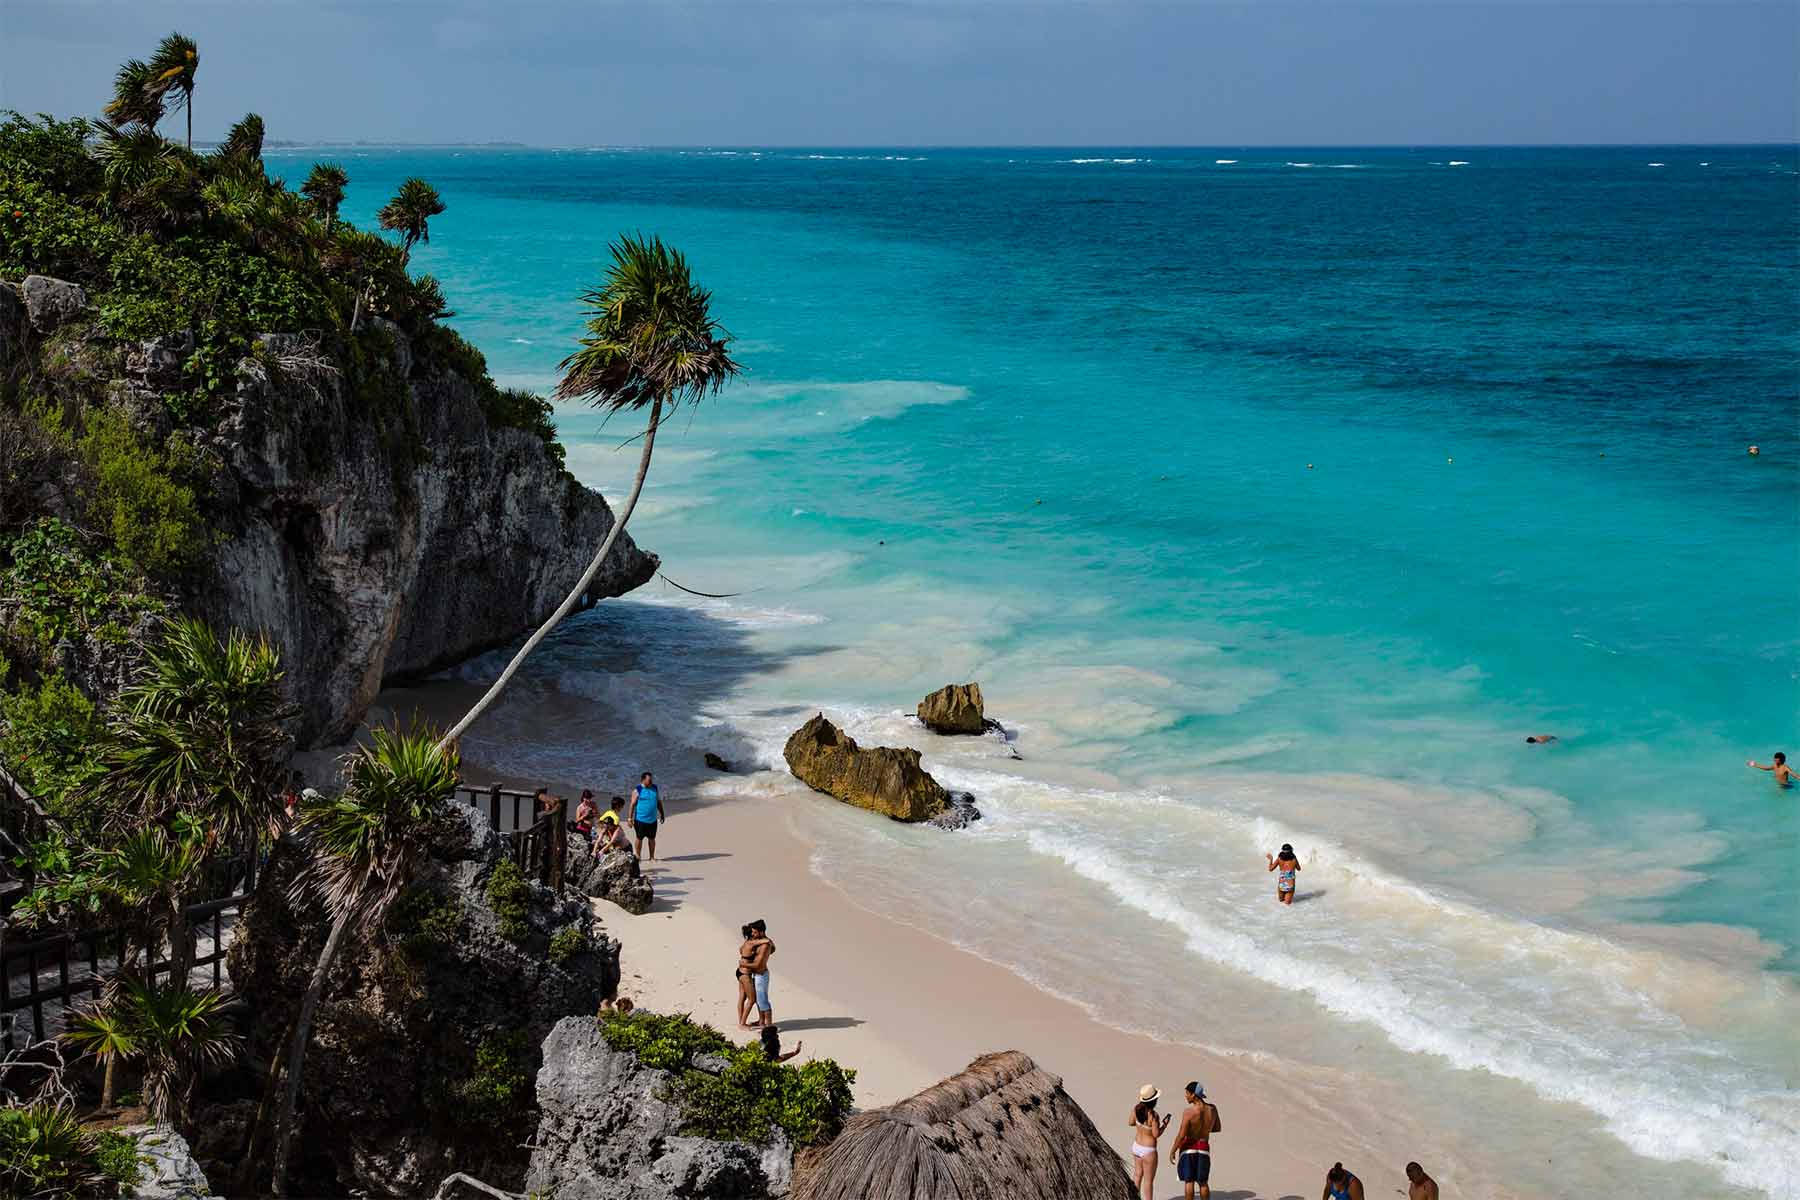 The coastline of Tulum Mexico